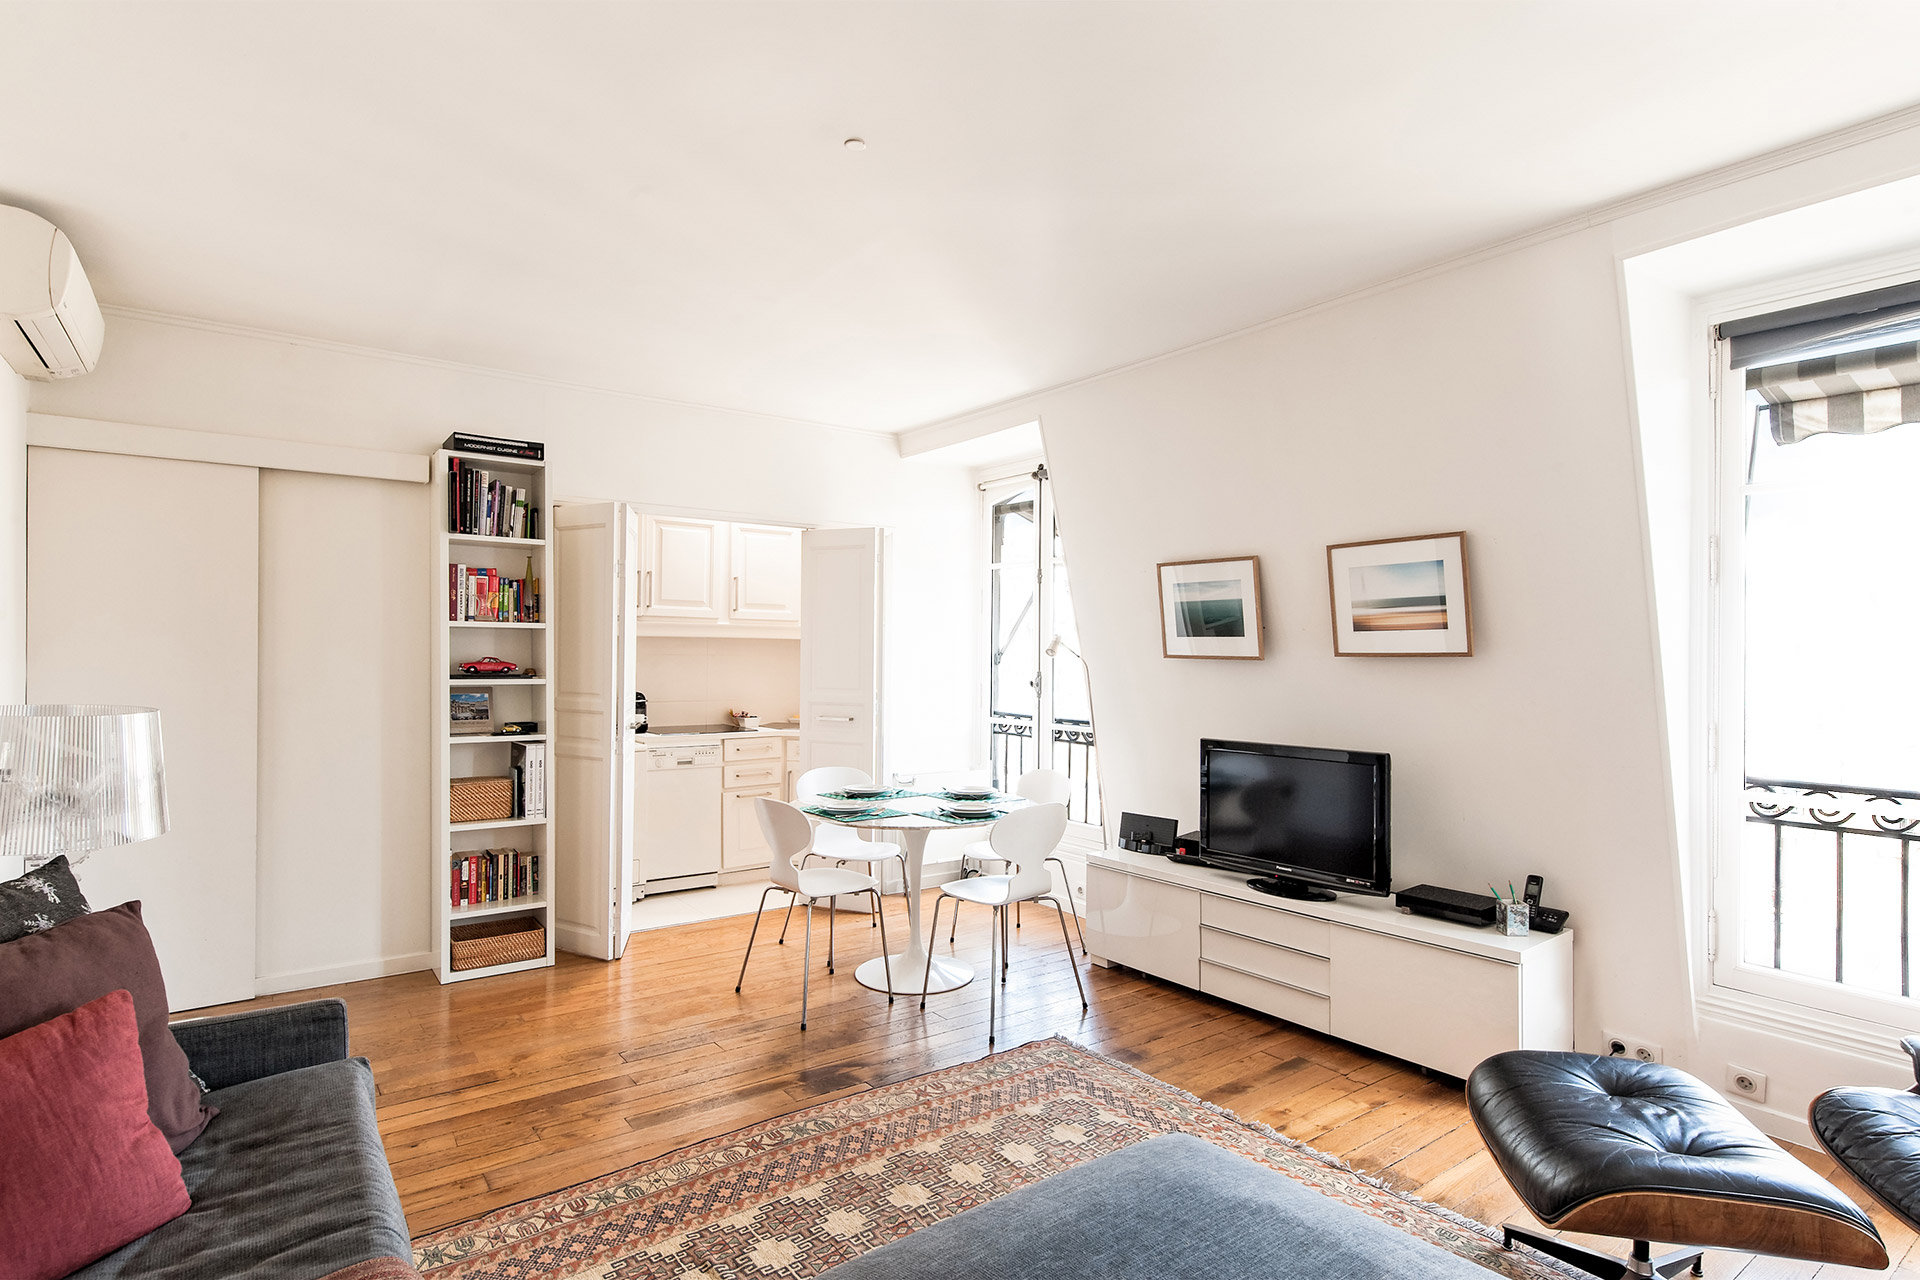 Apartment in Paris France with Cable TV